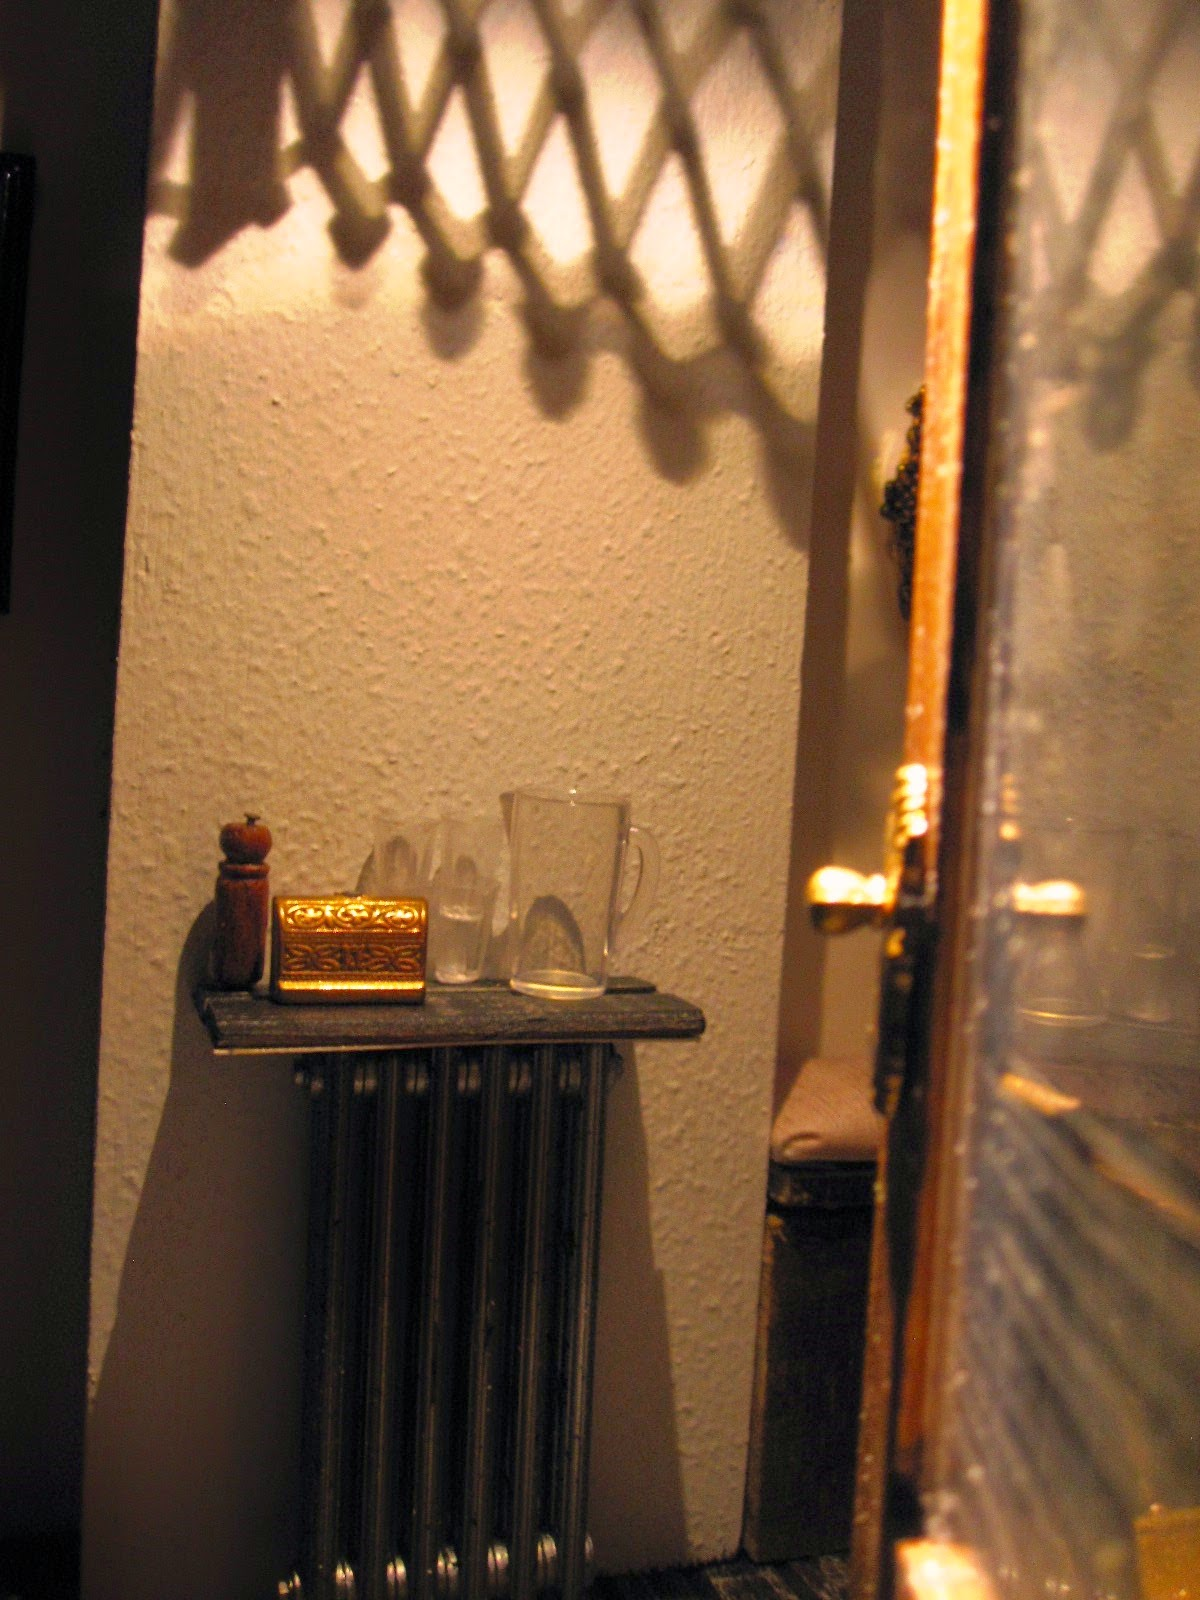 Interior of a modern dolls' house miniature cafe at night.